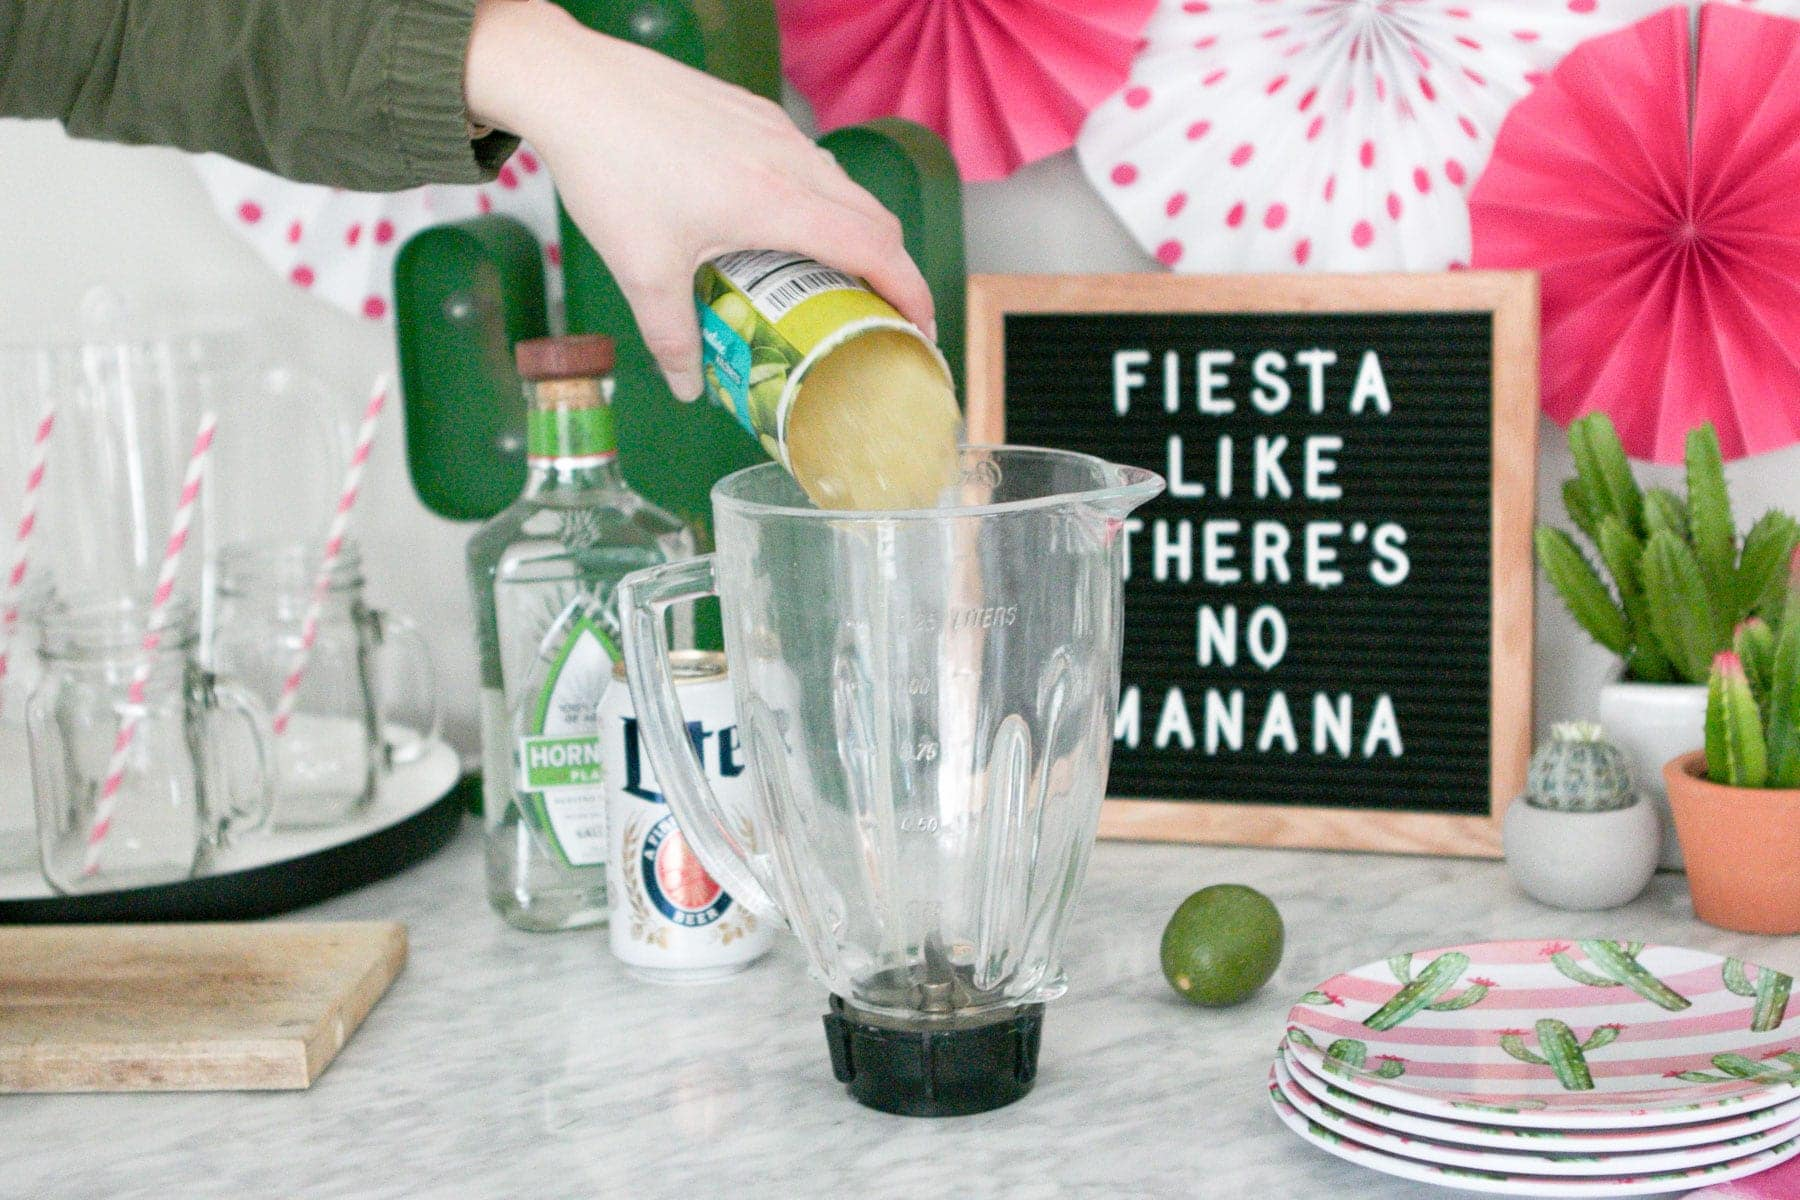 pouring limeade into a margarita